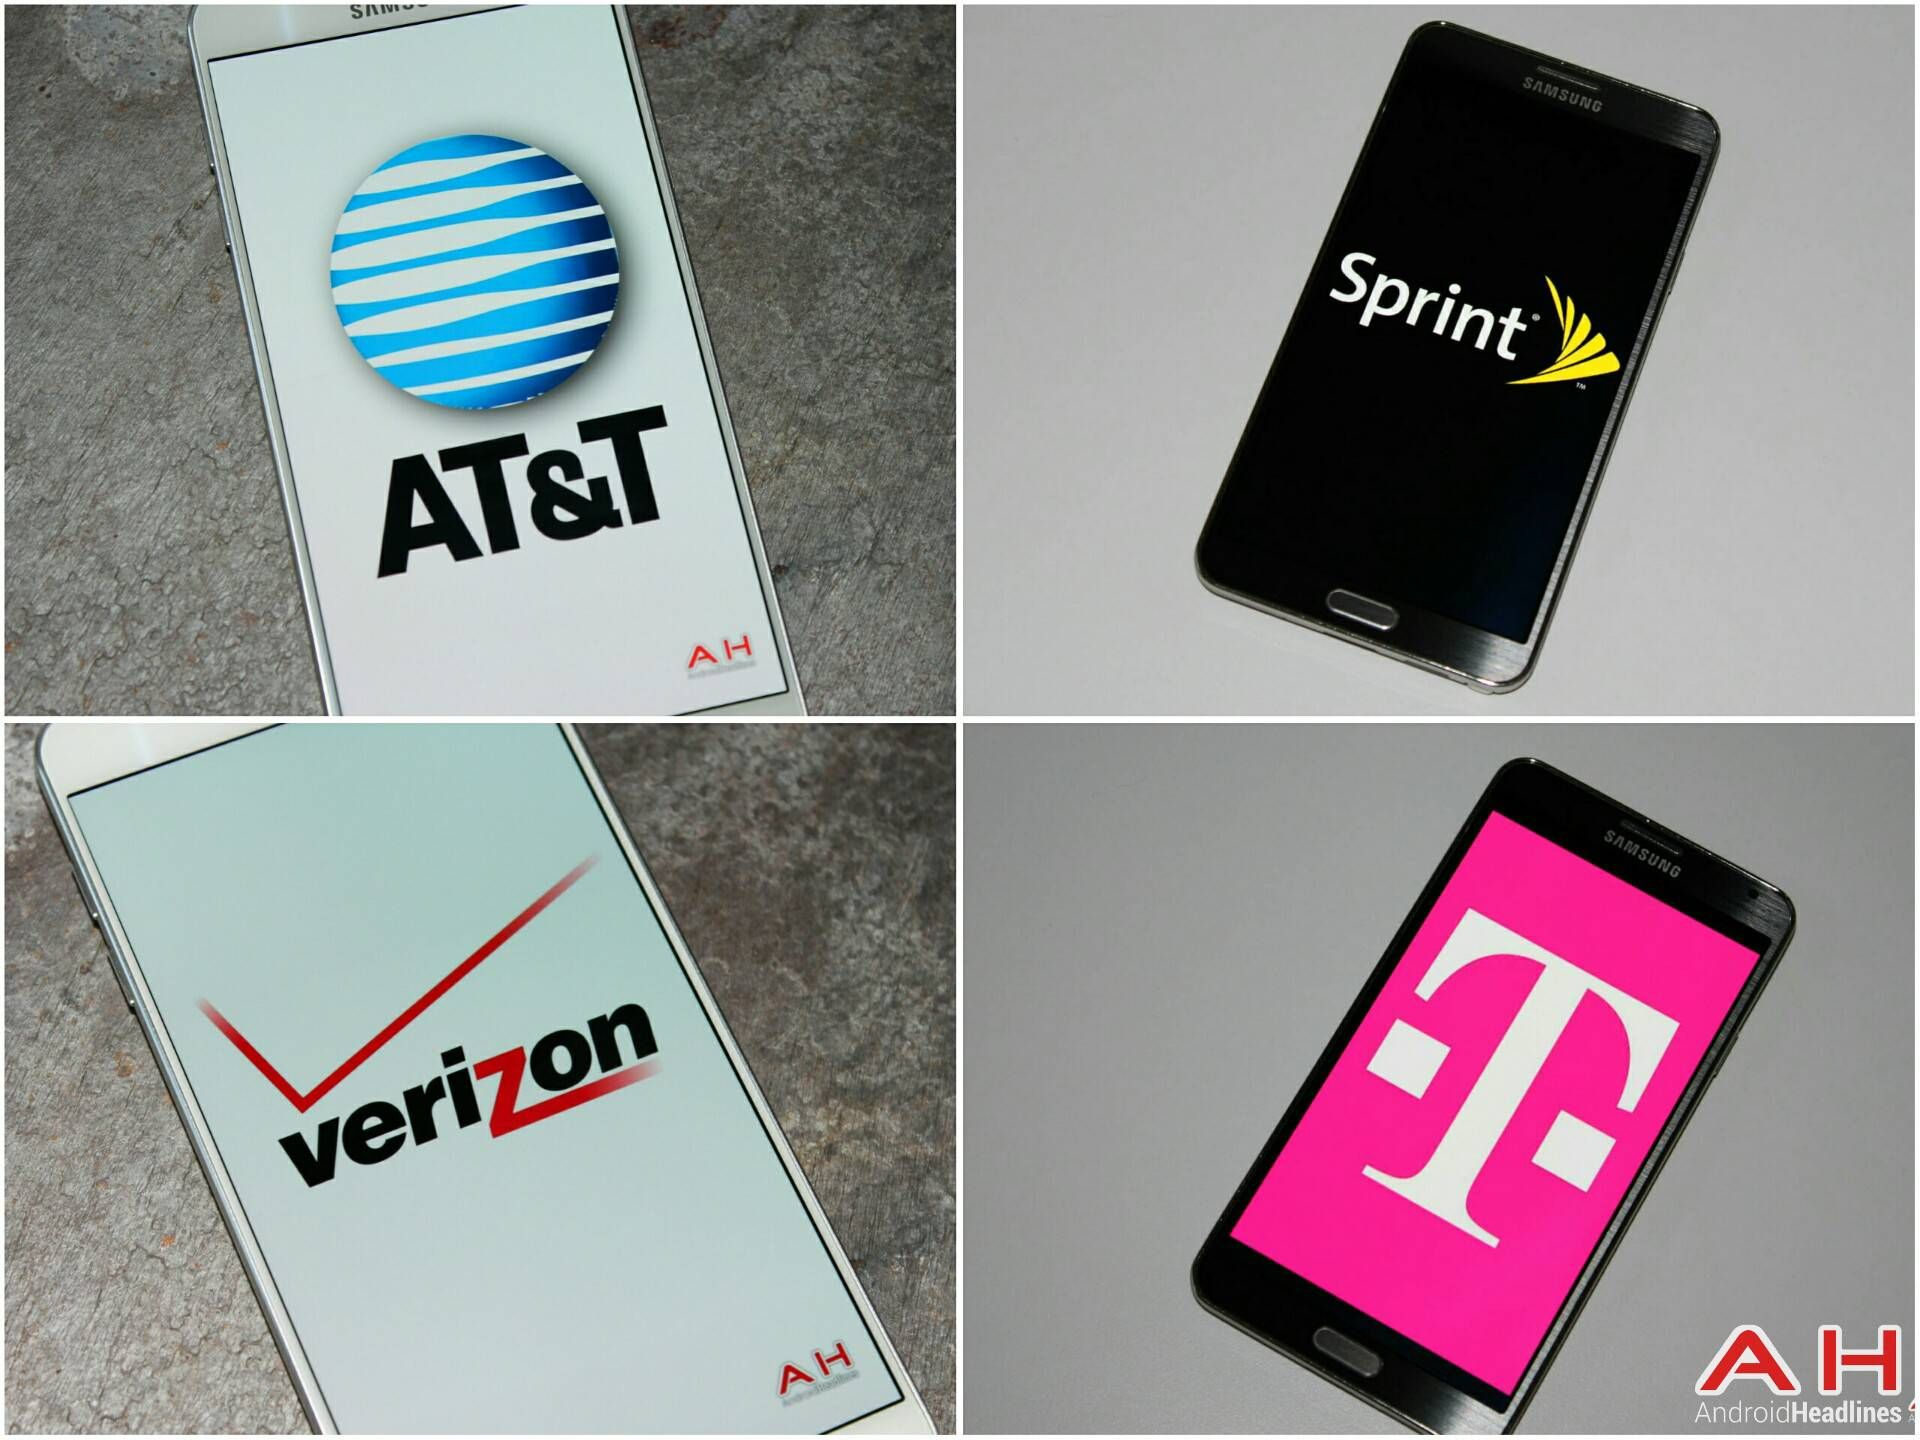 Verizon New Plans 2020 New Street: AT&T and Verizon To Lose 10% Of Customers By 2020